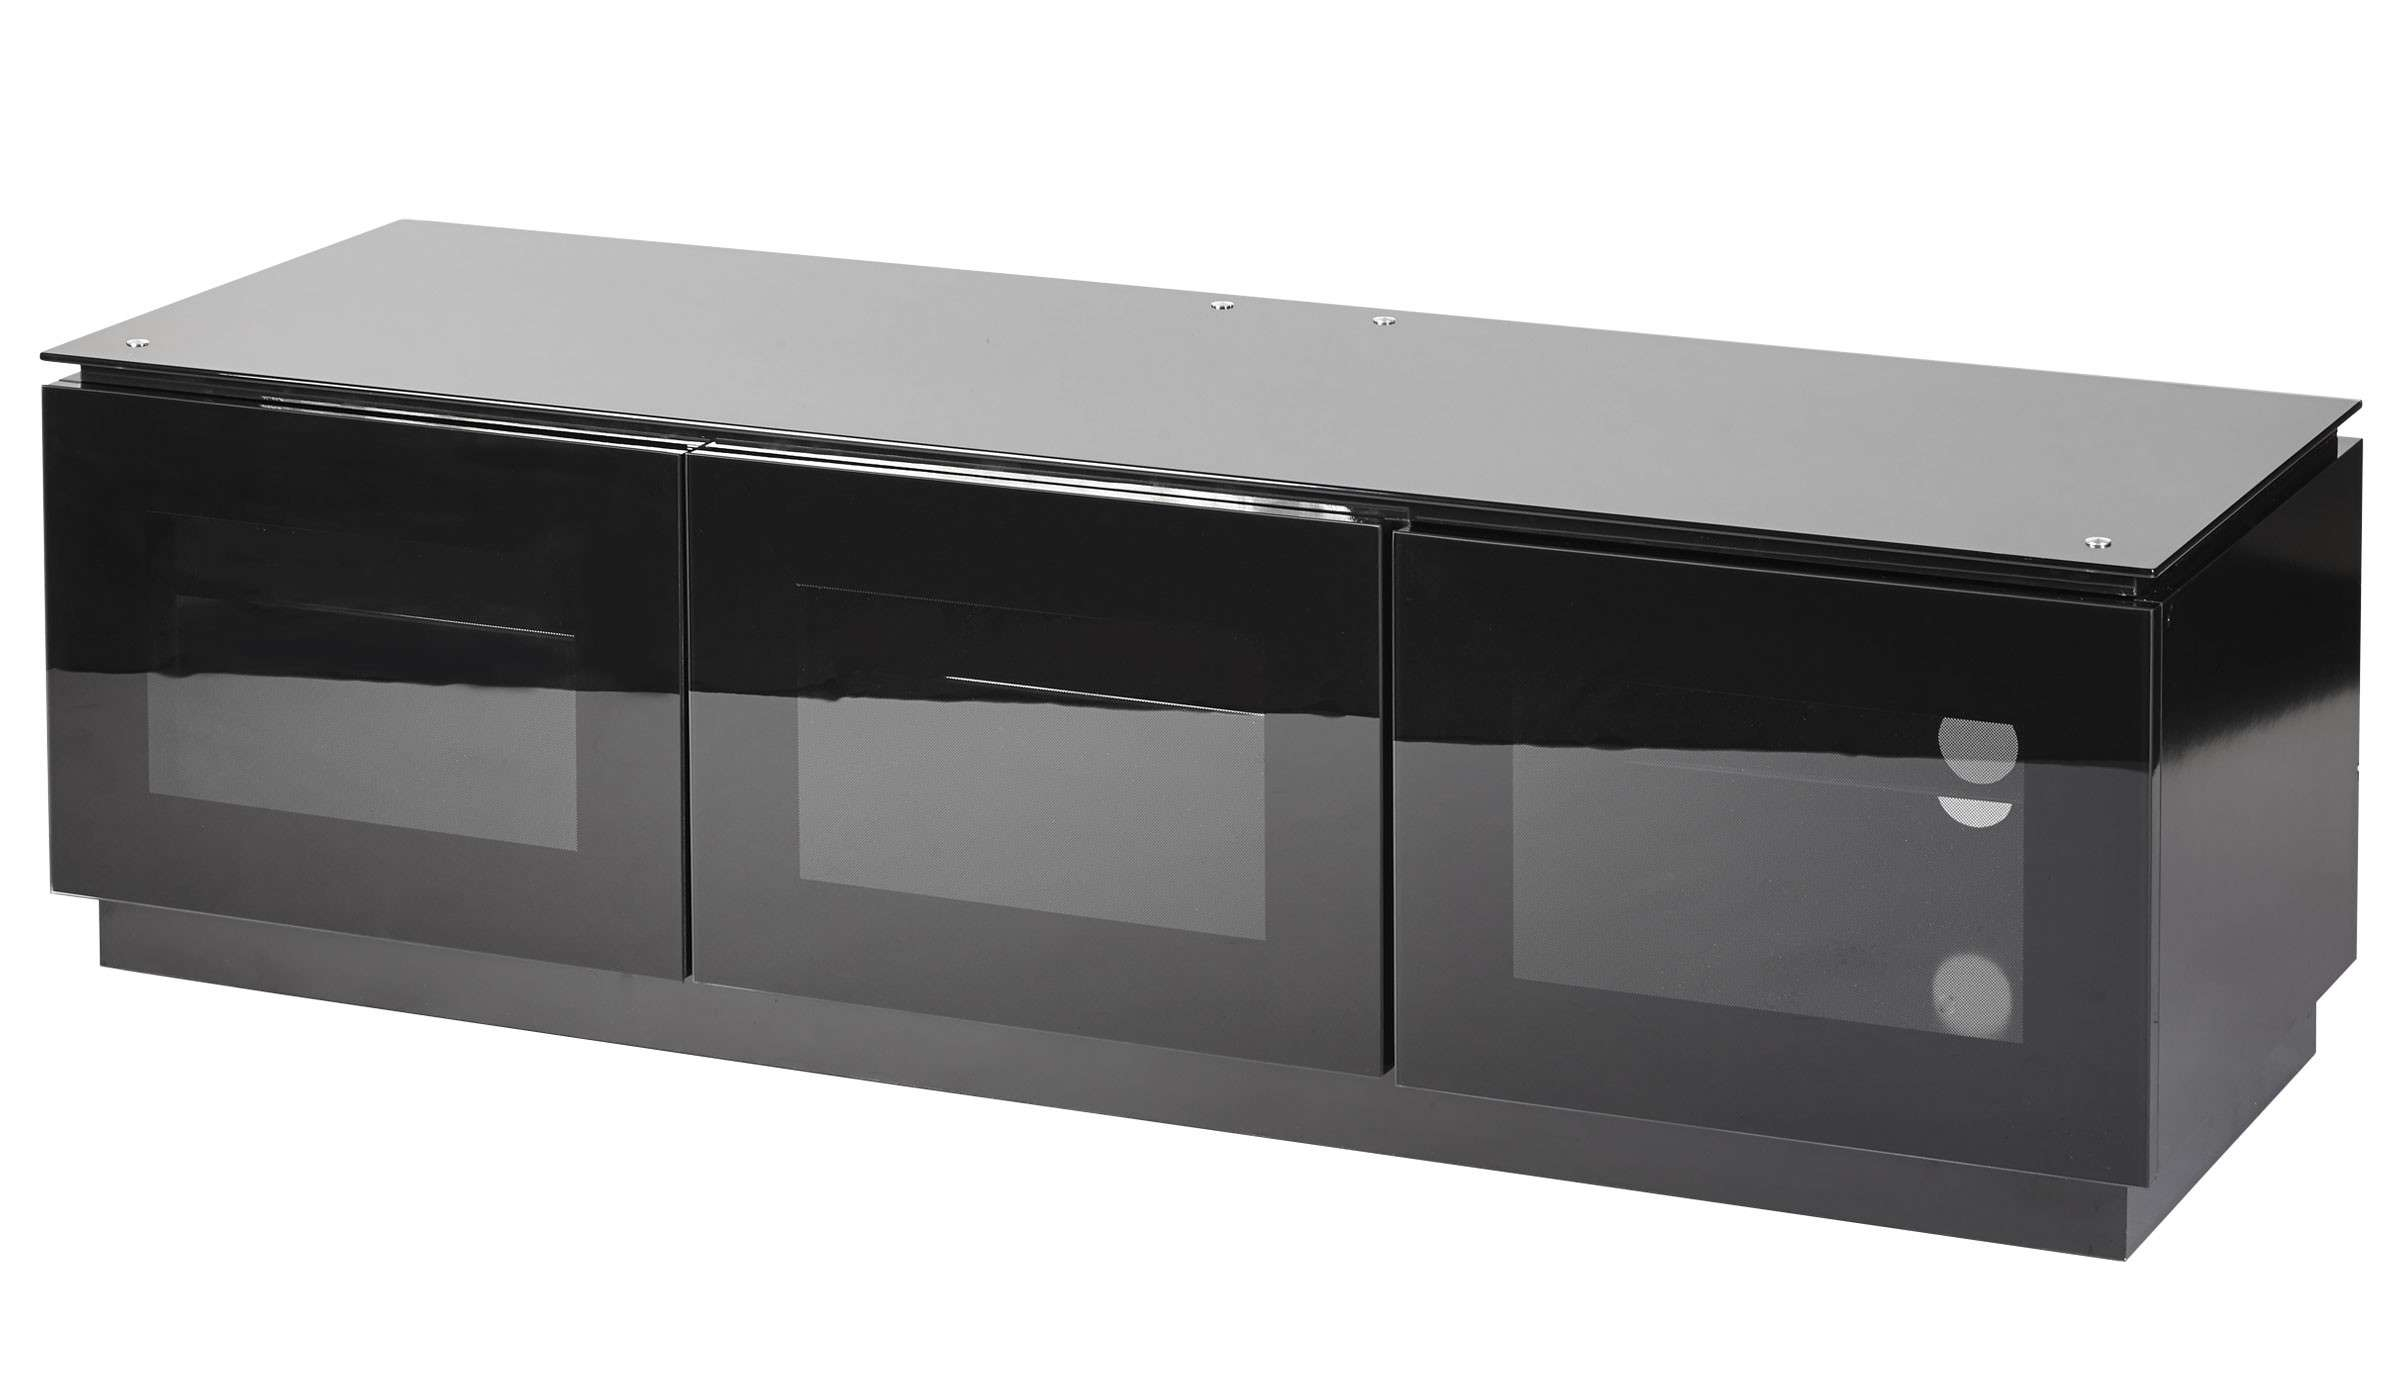 Black Gloss Tv Unit Up To 65 Inch Flat Tv | Mmt D1500 With Beam Thru Tv Cabinets (View 3 of 20)